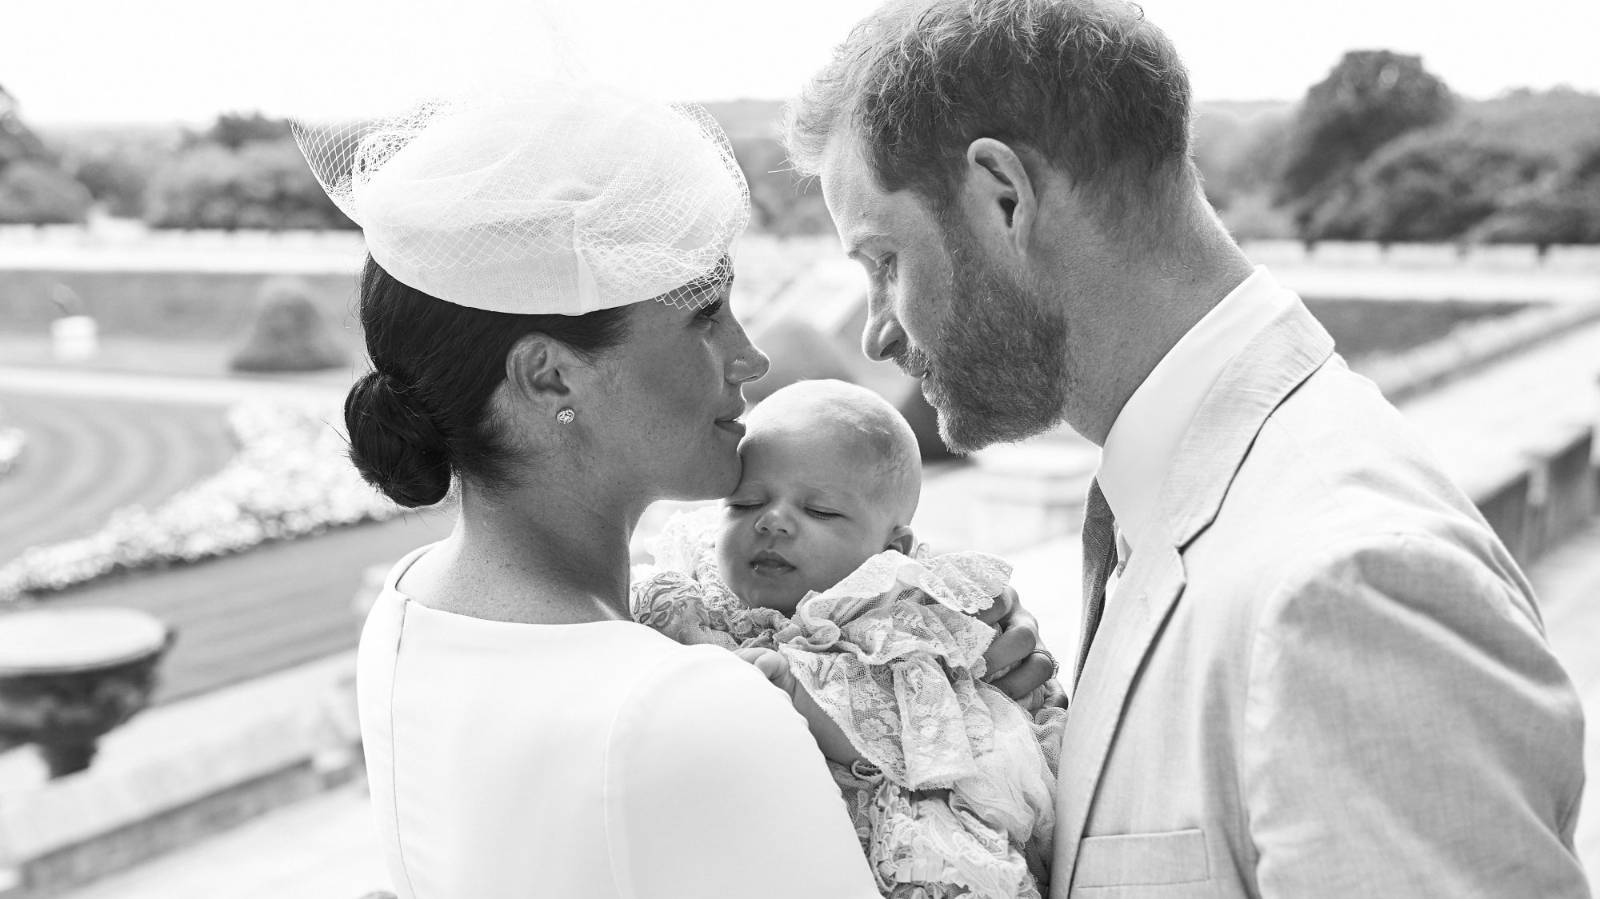 Prince Harry and Meghan Markle's Archewell website goes live ahead of launch